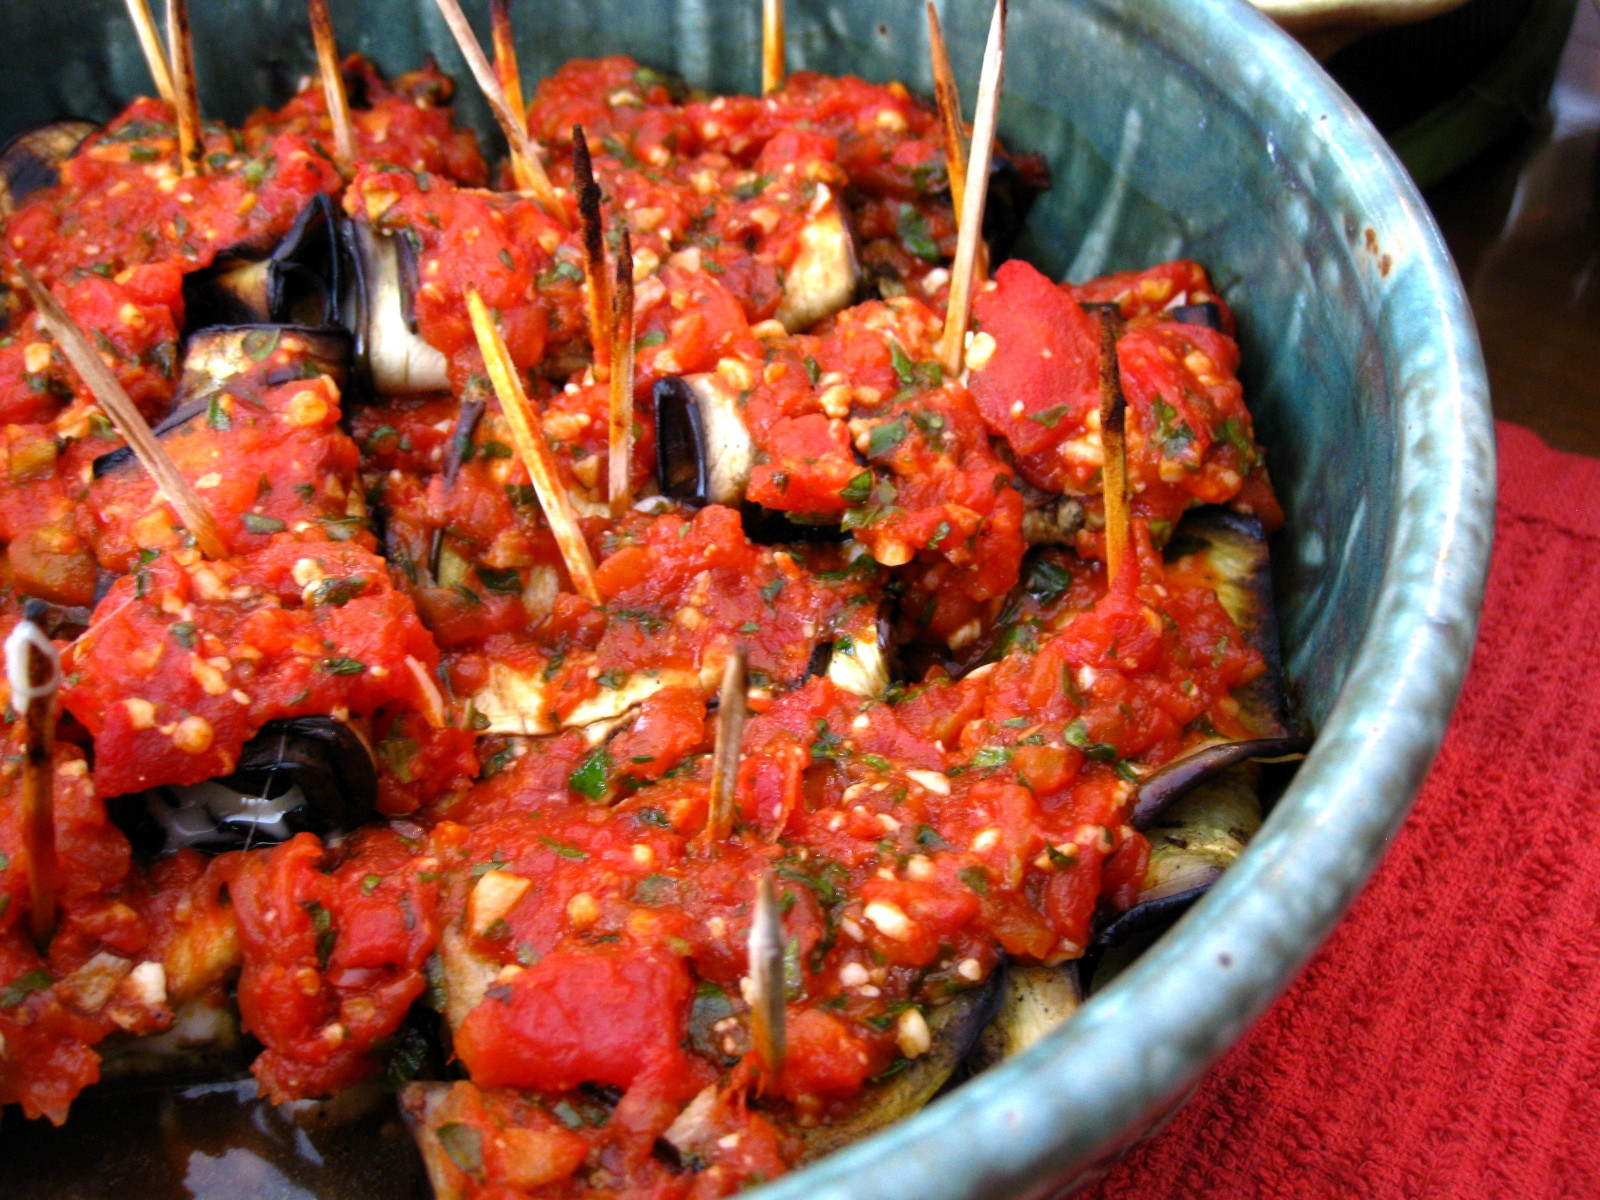 Fall Italian Recipes  Cara s Cravings 3 Rustic Italian Appetizers to Fall in